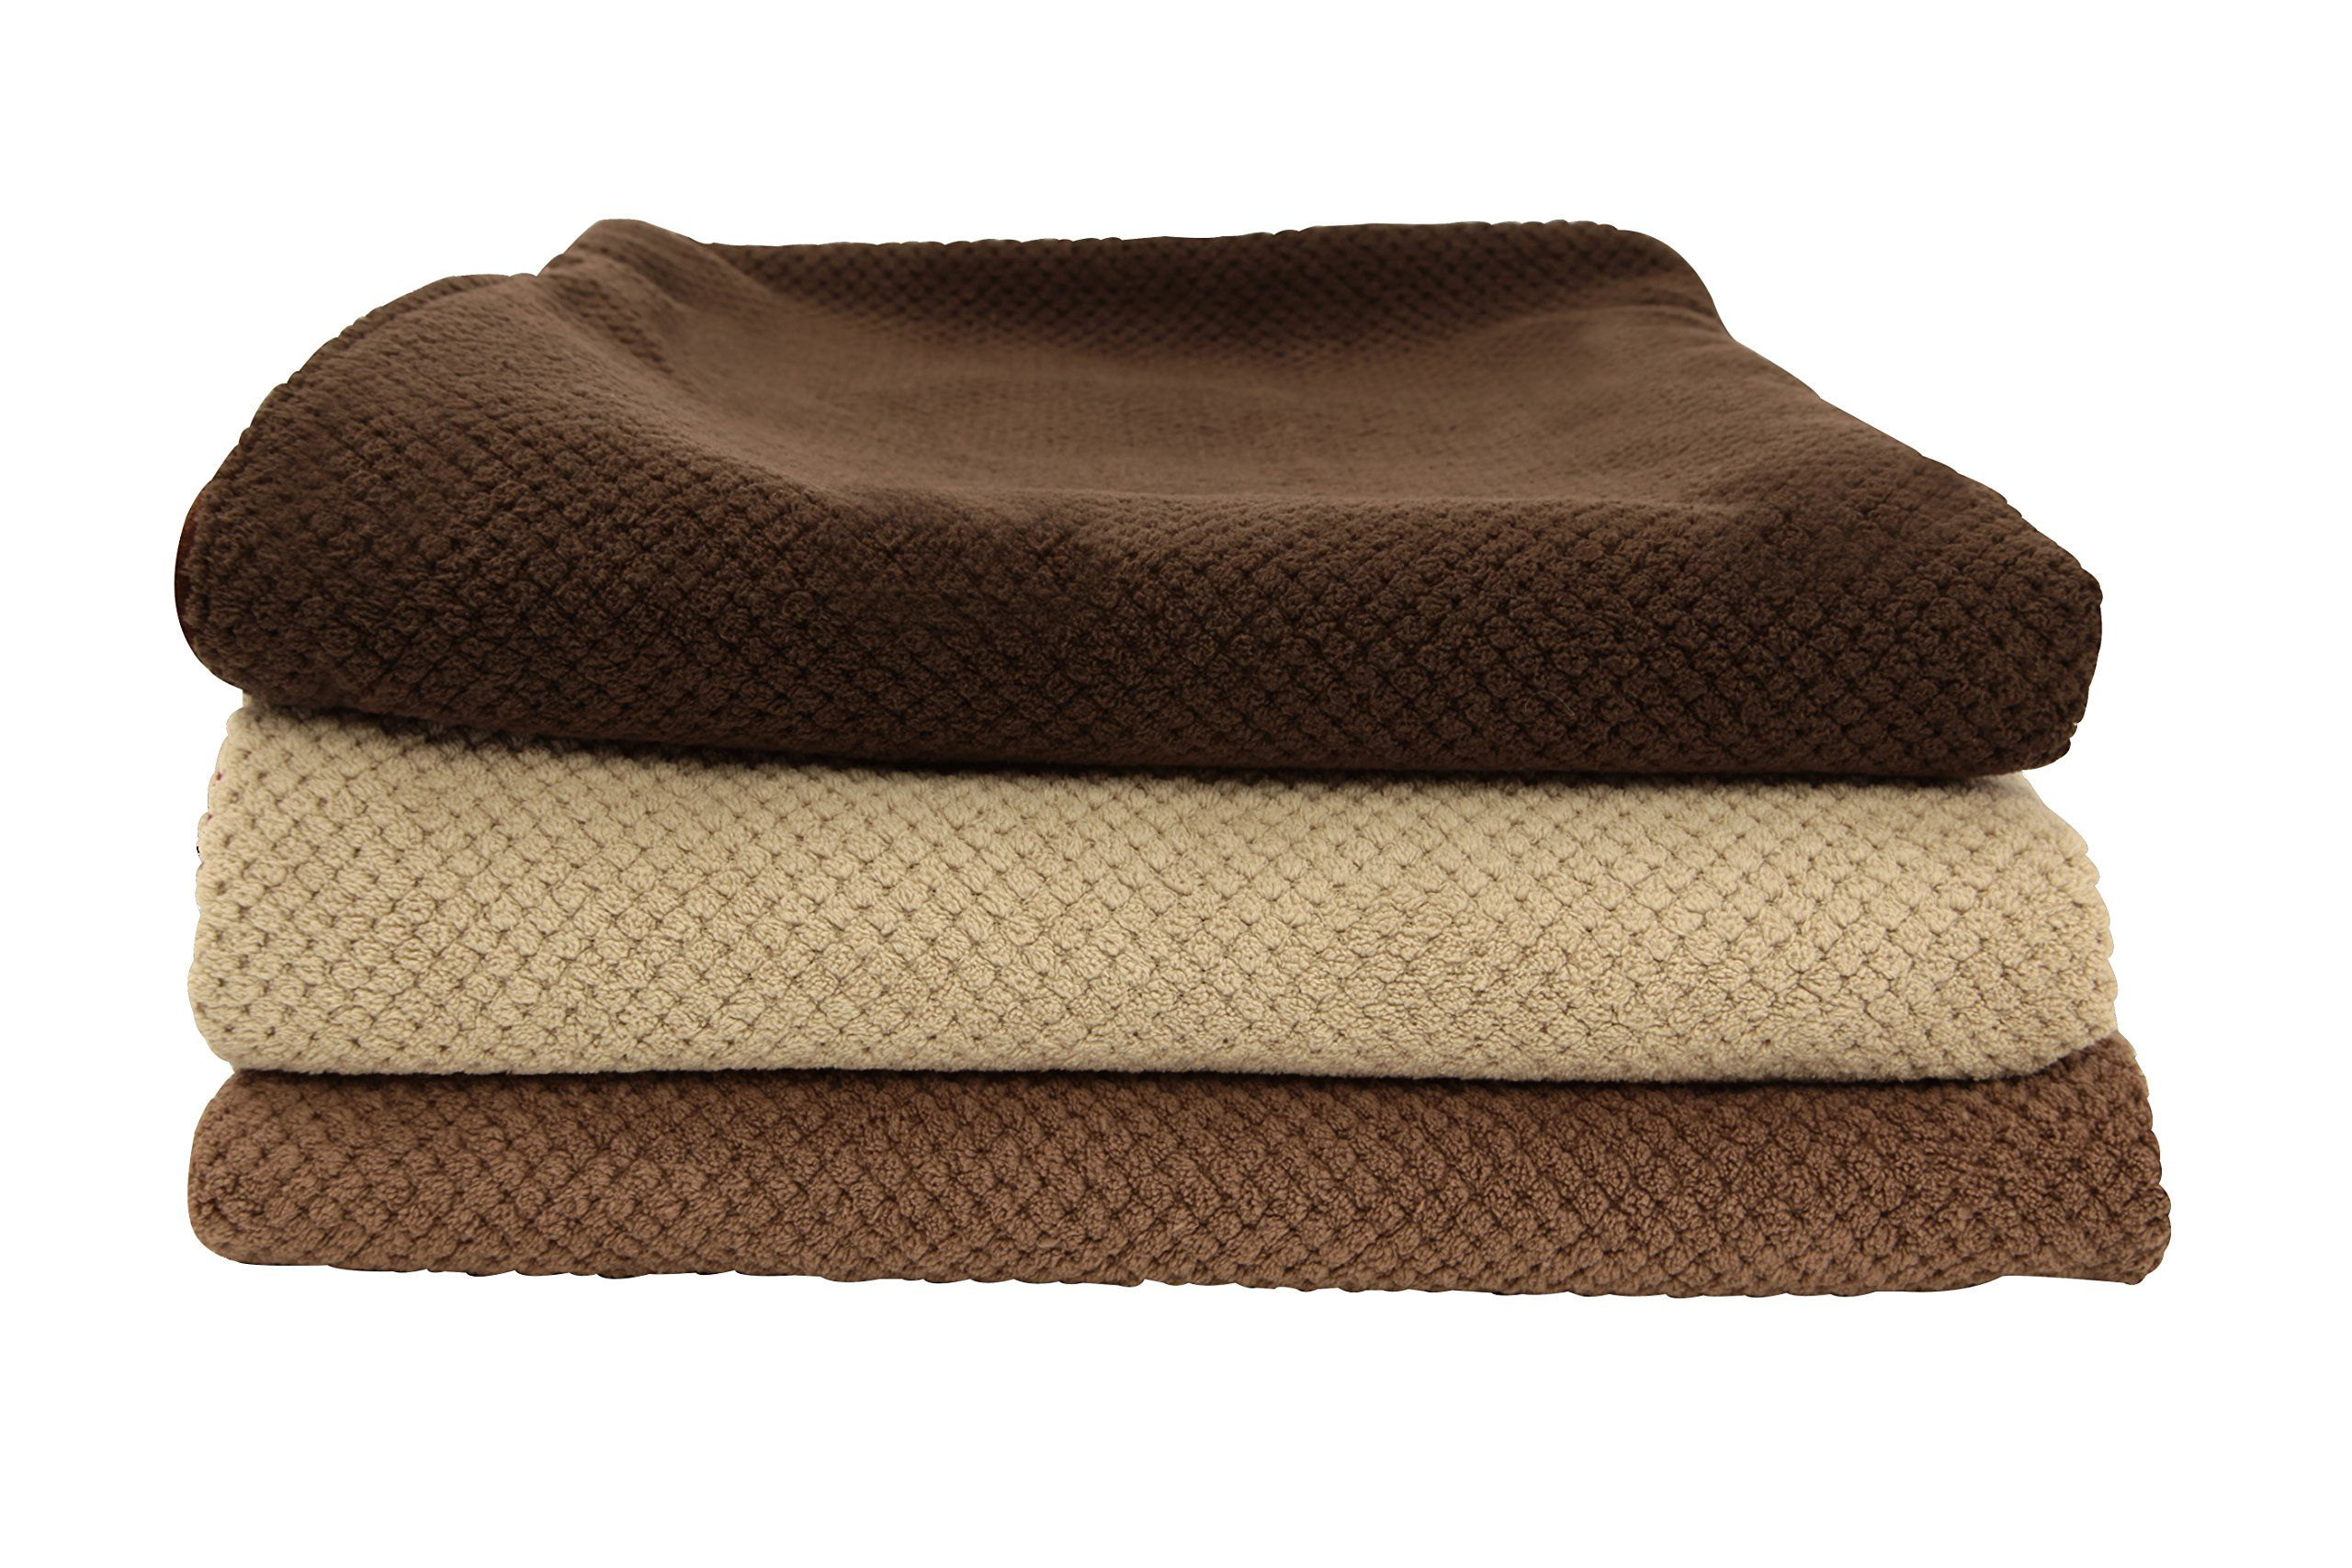 Big Blankie Giant Chocolate Soft Plush Reversible Dog